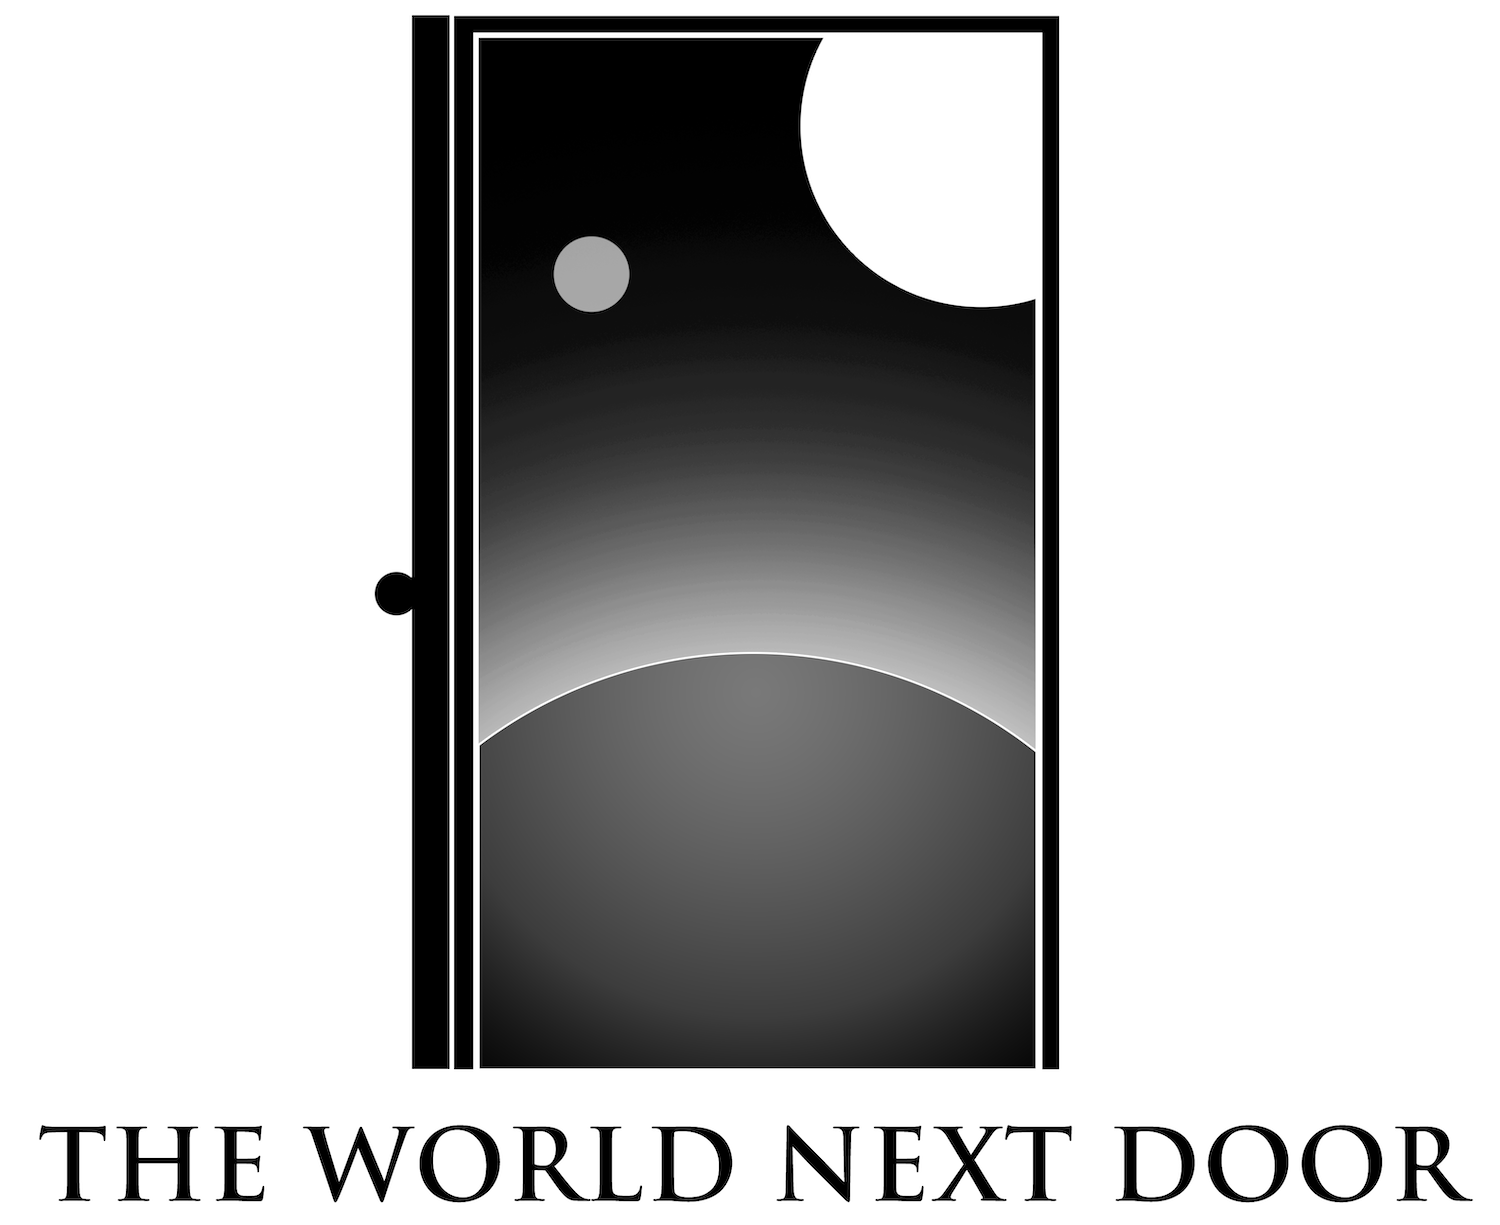 The World Next Door primary image